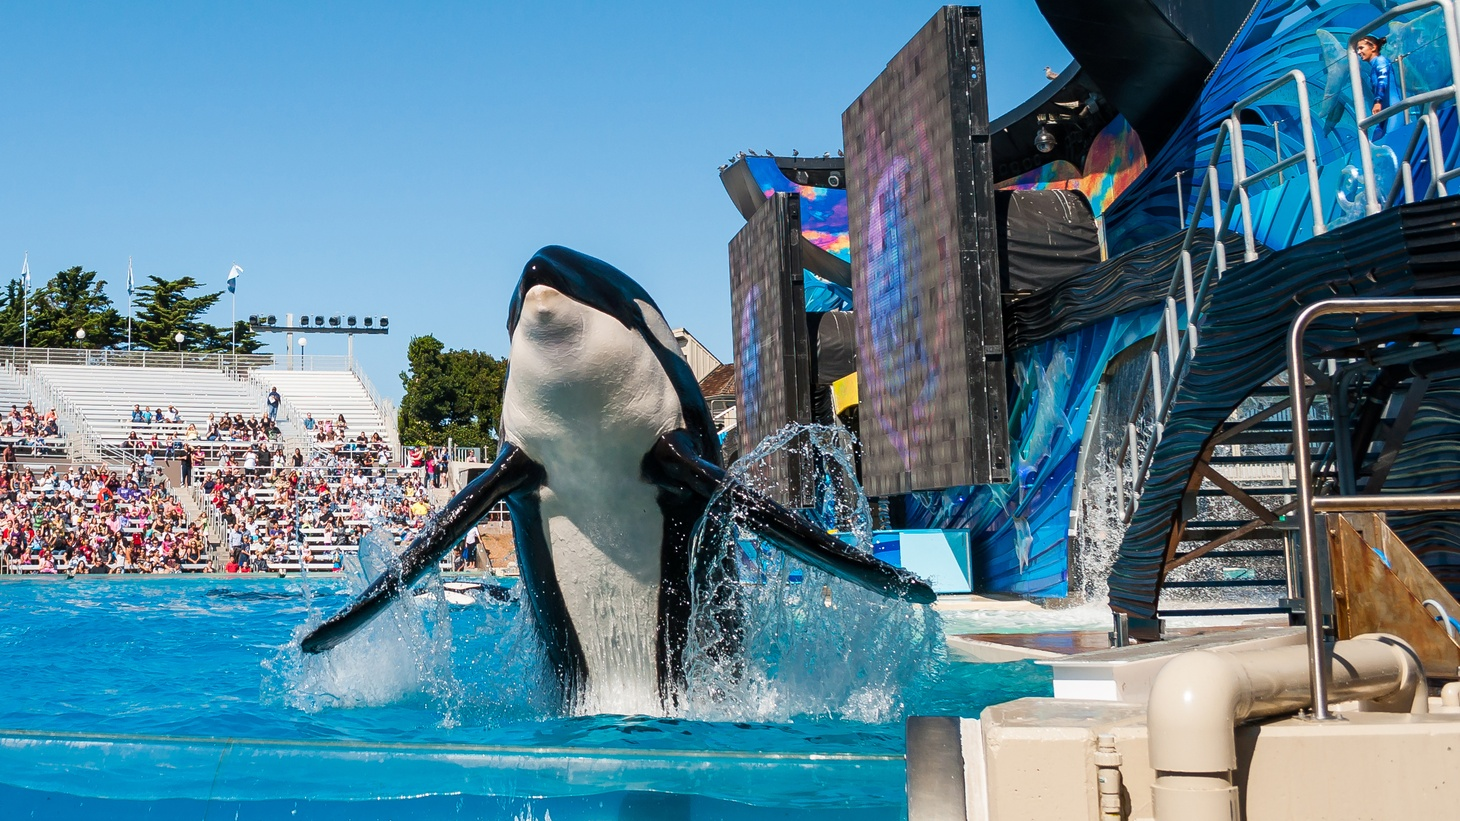 The Coastal Commission has approved bigger tanks for 11 killer whales at a cost of $100 million. That sounds like a victory for Sea World in San Diego -- but the Commission rejected both a captive breeding program and the introduction of any new orcas. Does Sea World have a future?